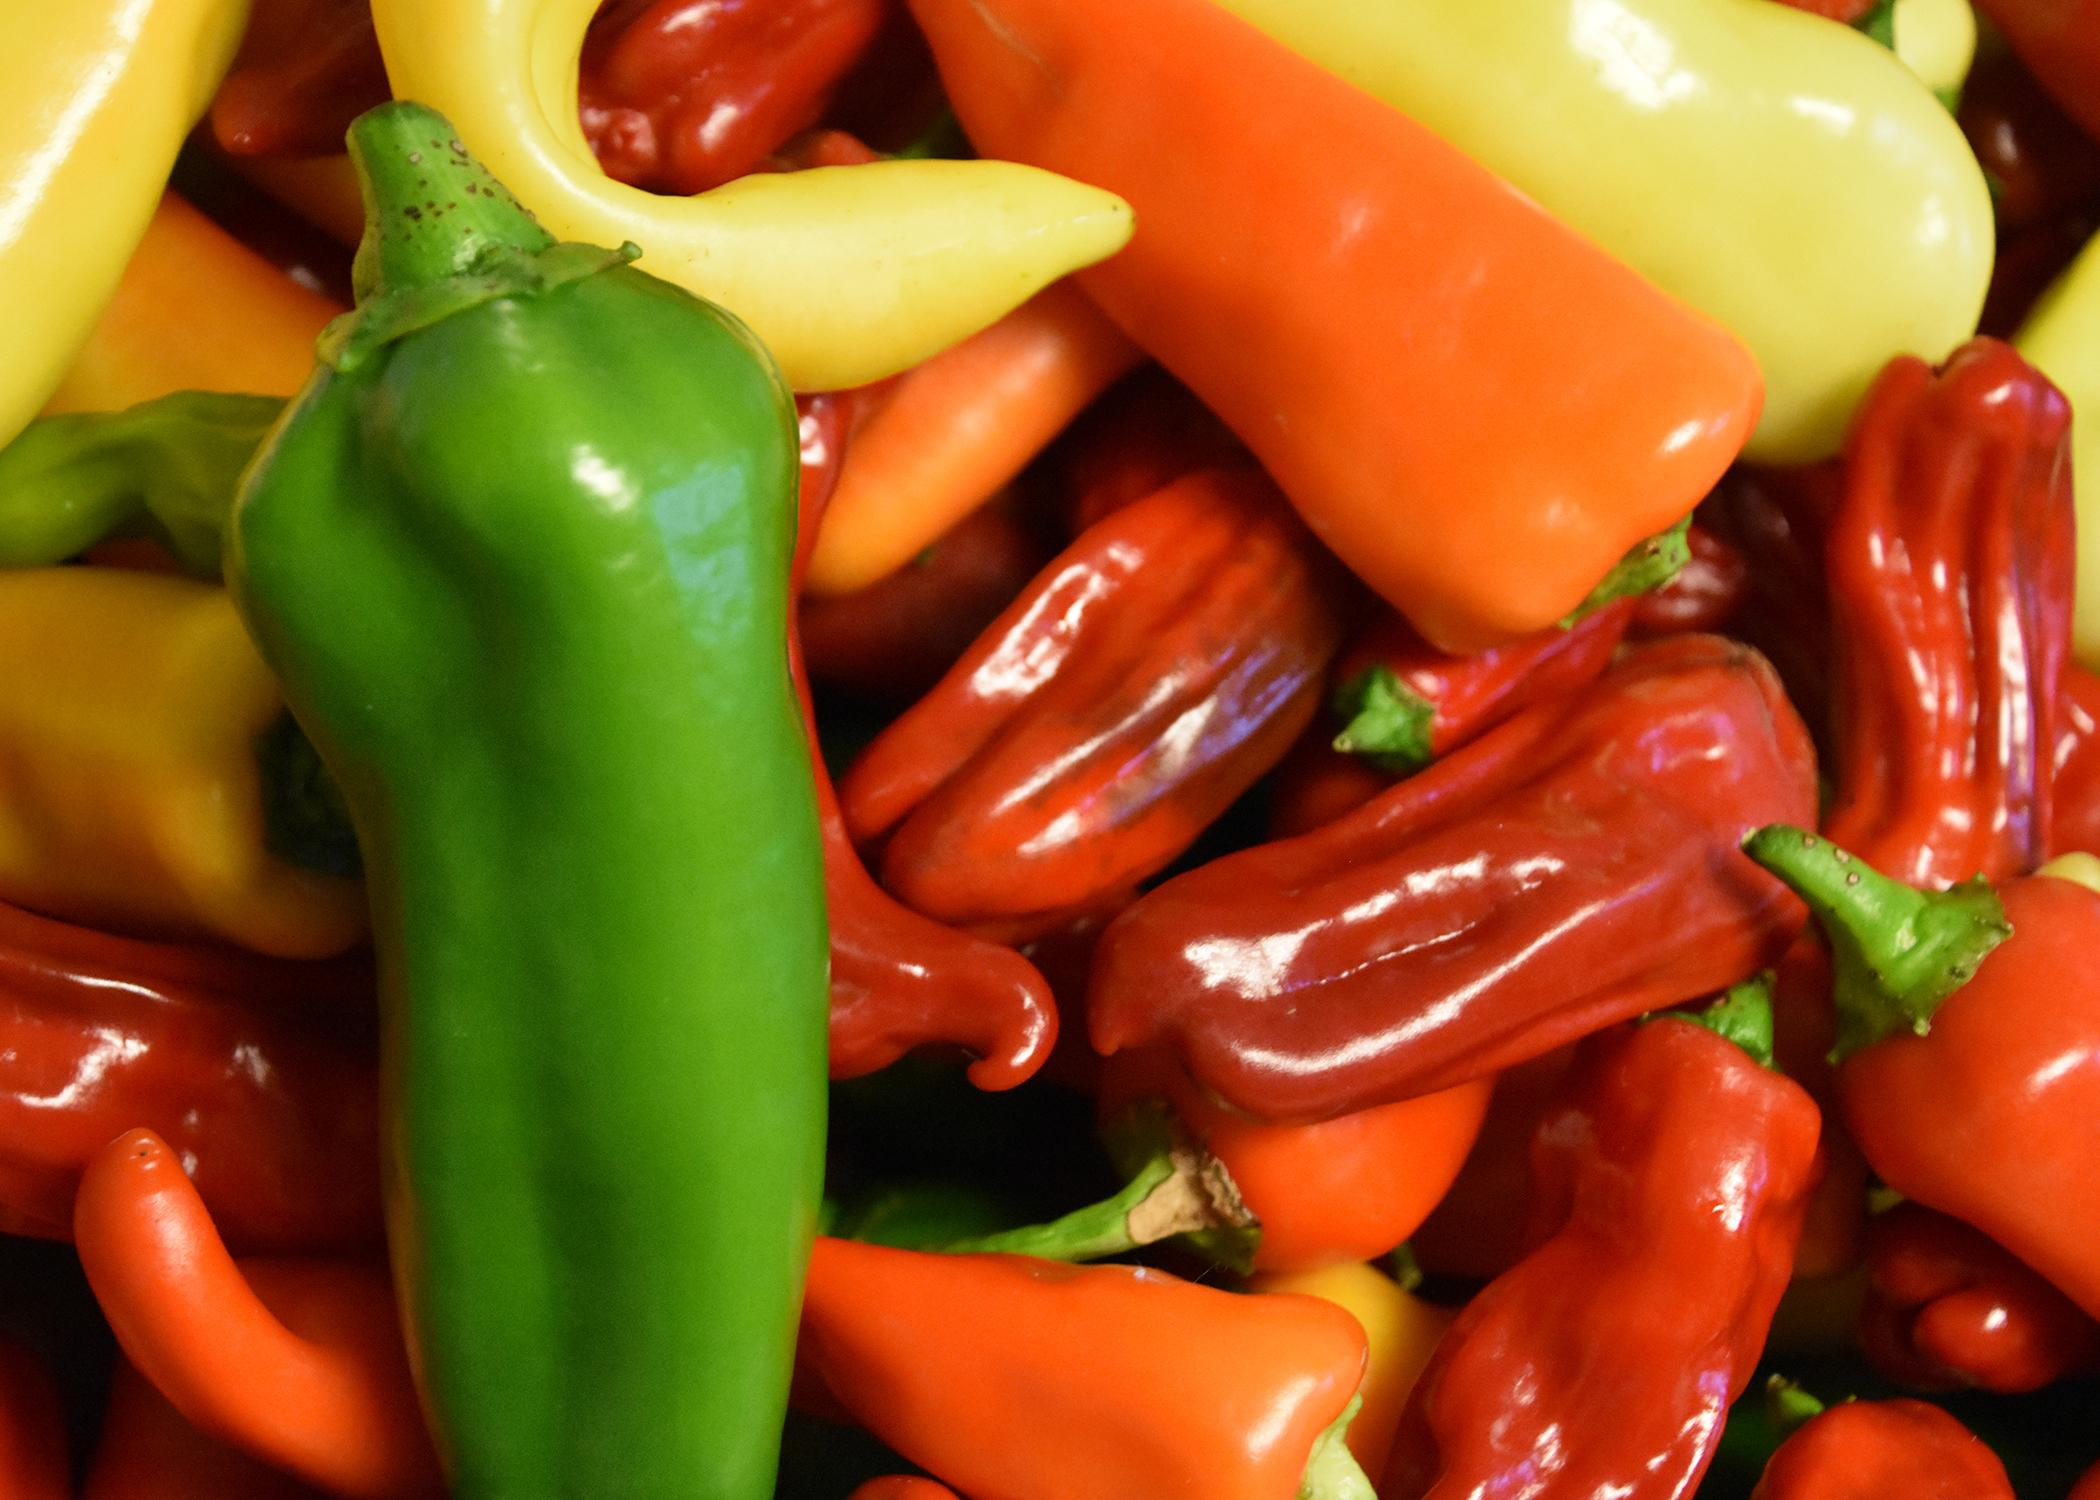 A slender, green pepper sits atop a collection of yellow, red and orange peppers.